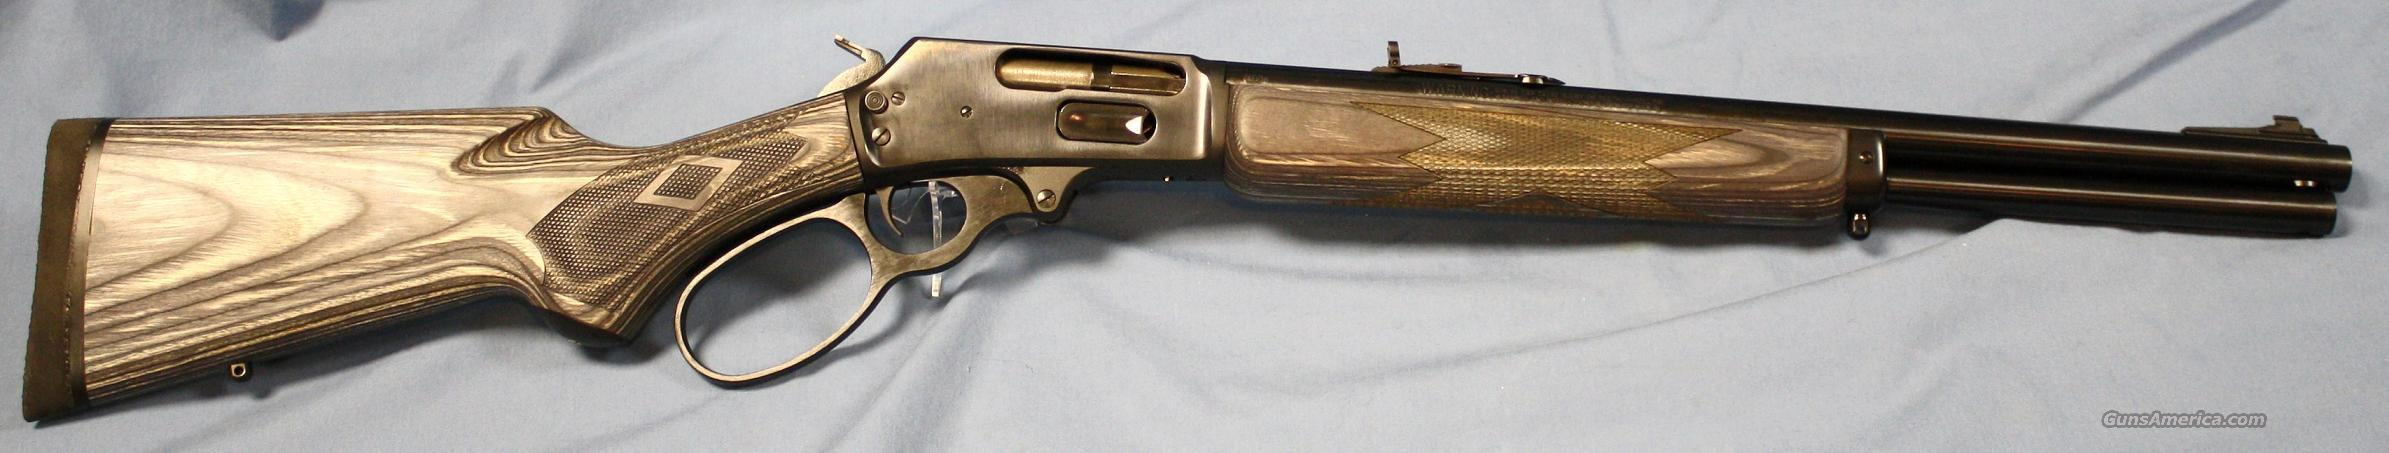 Marlin 1895ABL Big Loop Lever Action Rifle .45-70  Guns > Rifles > Marlin Rifles > Modern > Lever Action